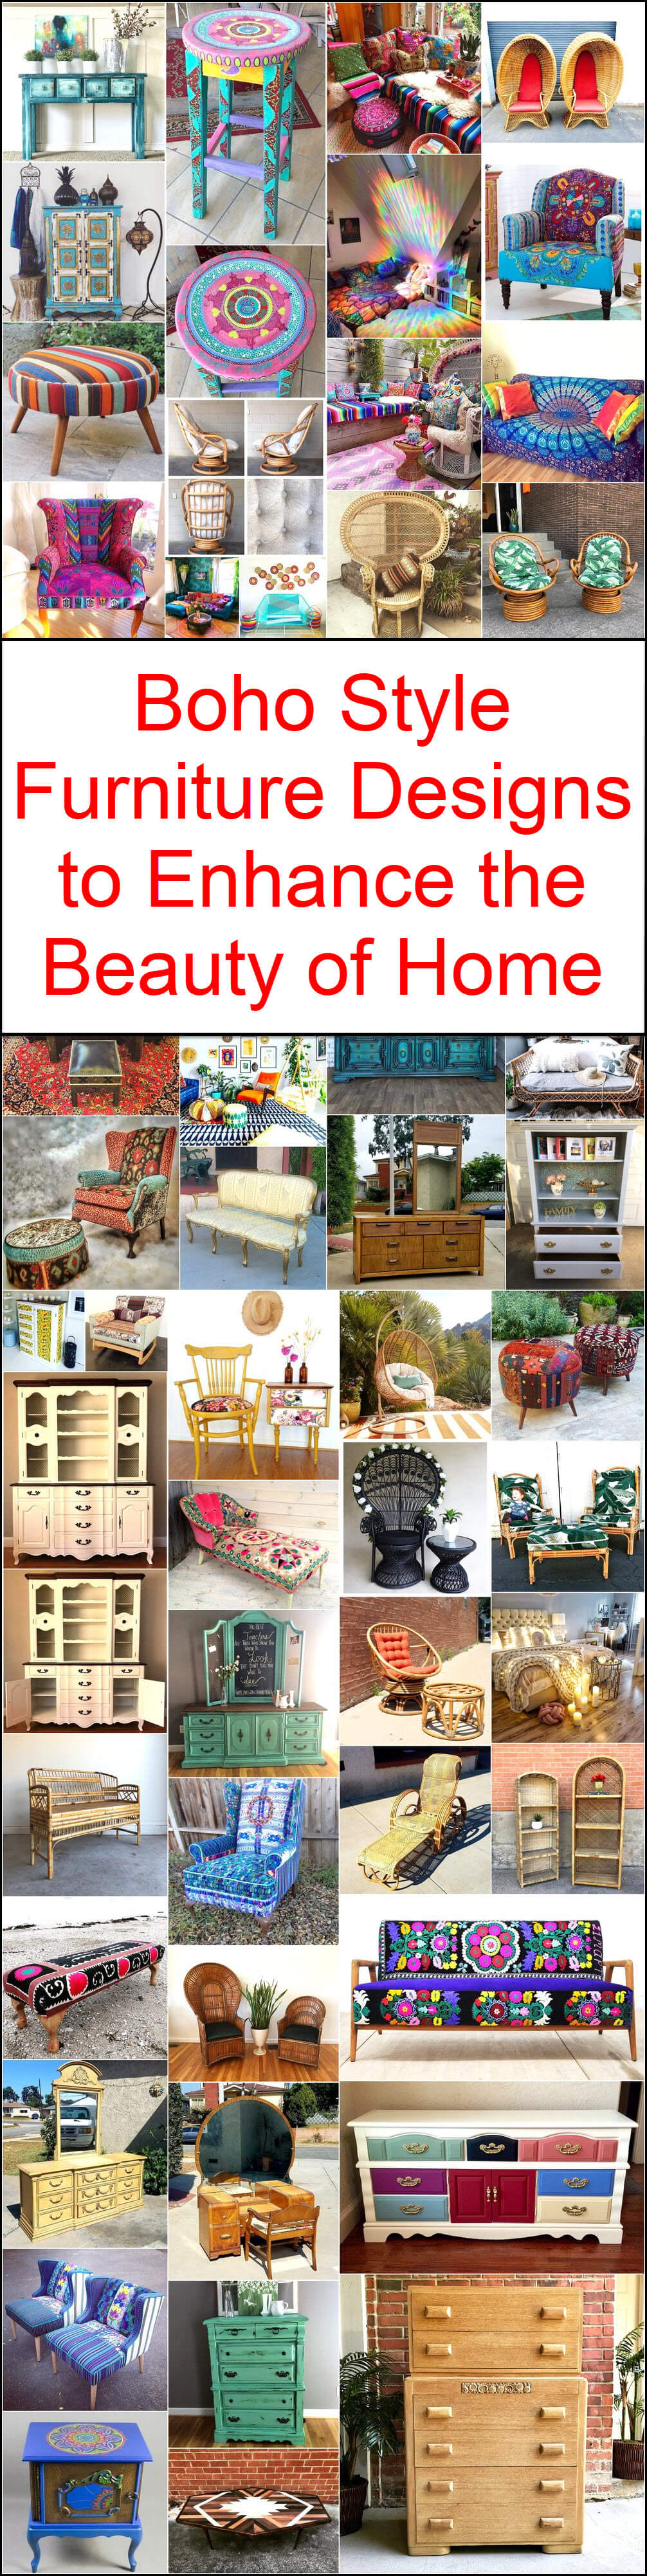 Boho Style Furniture Designs to Enhance the Beauty of Home